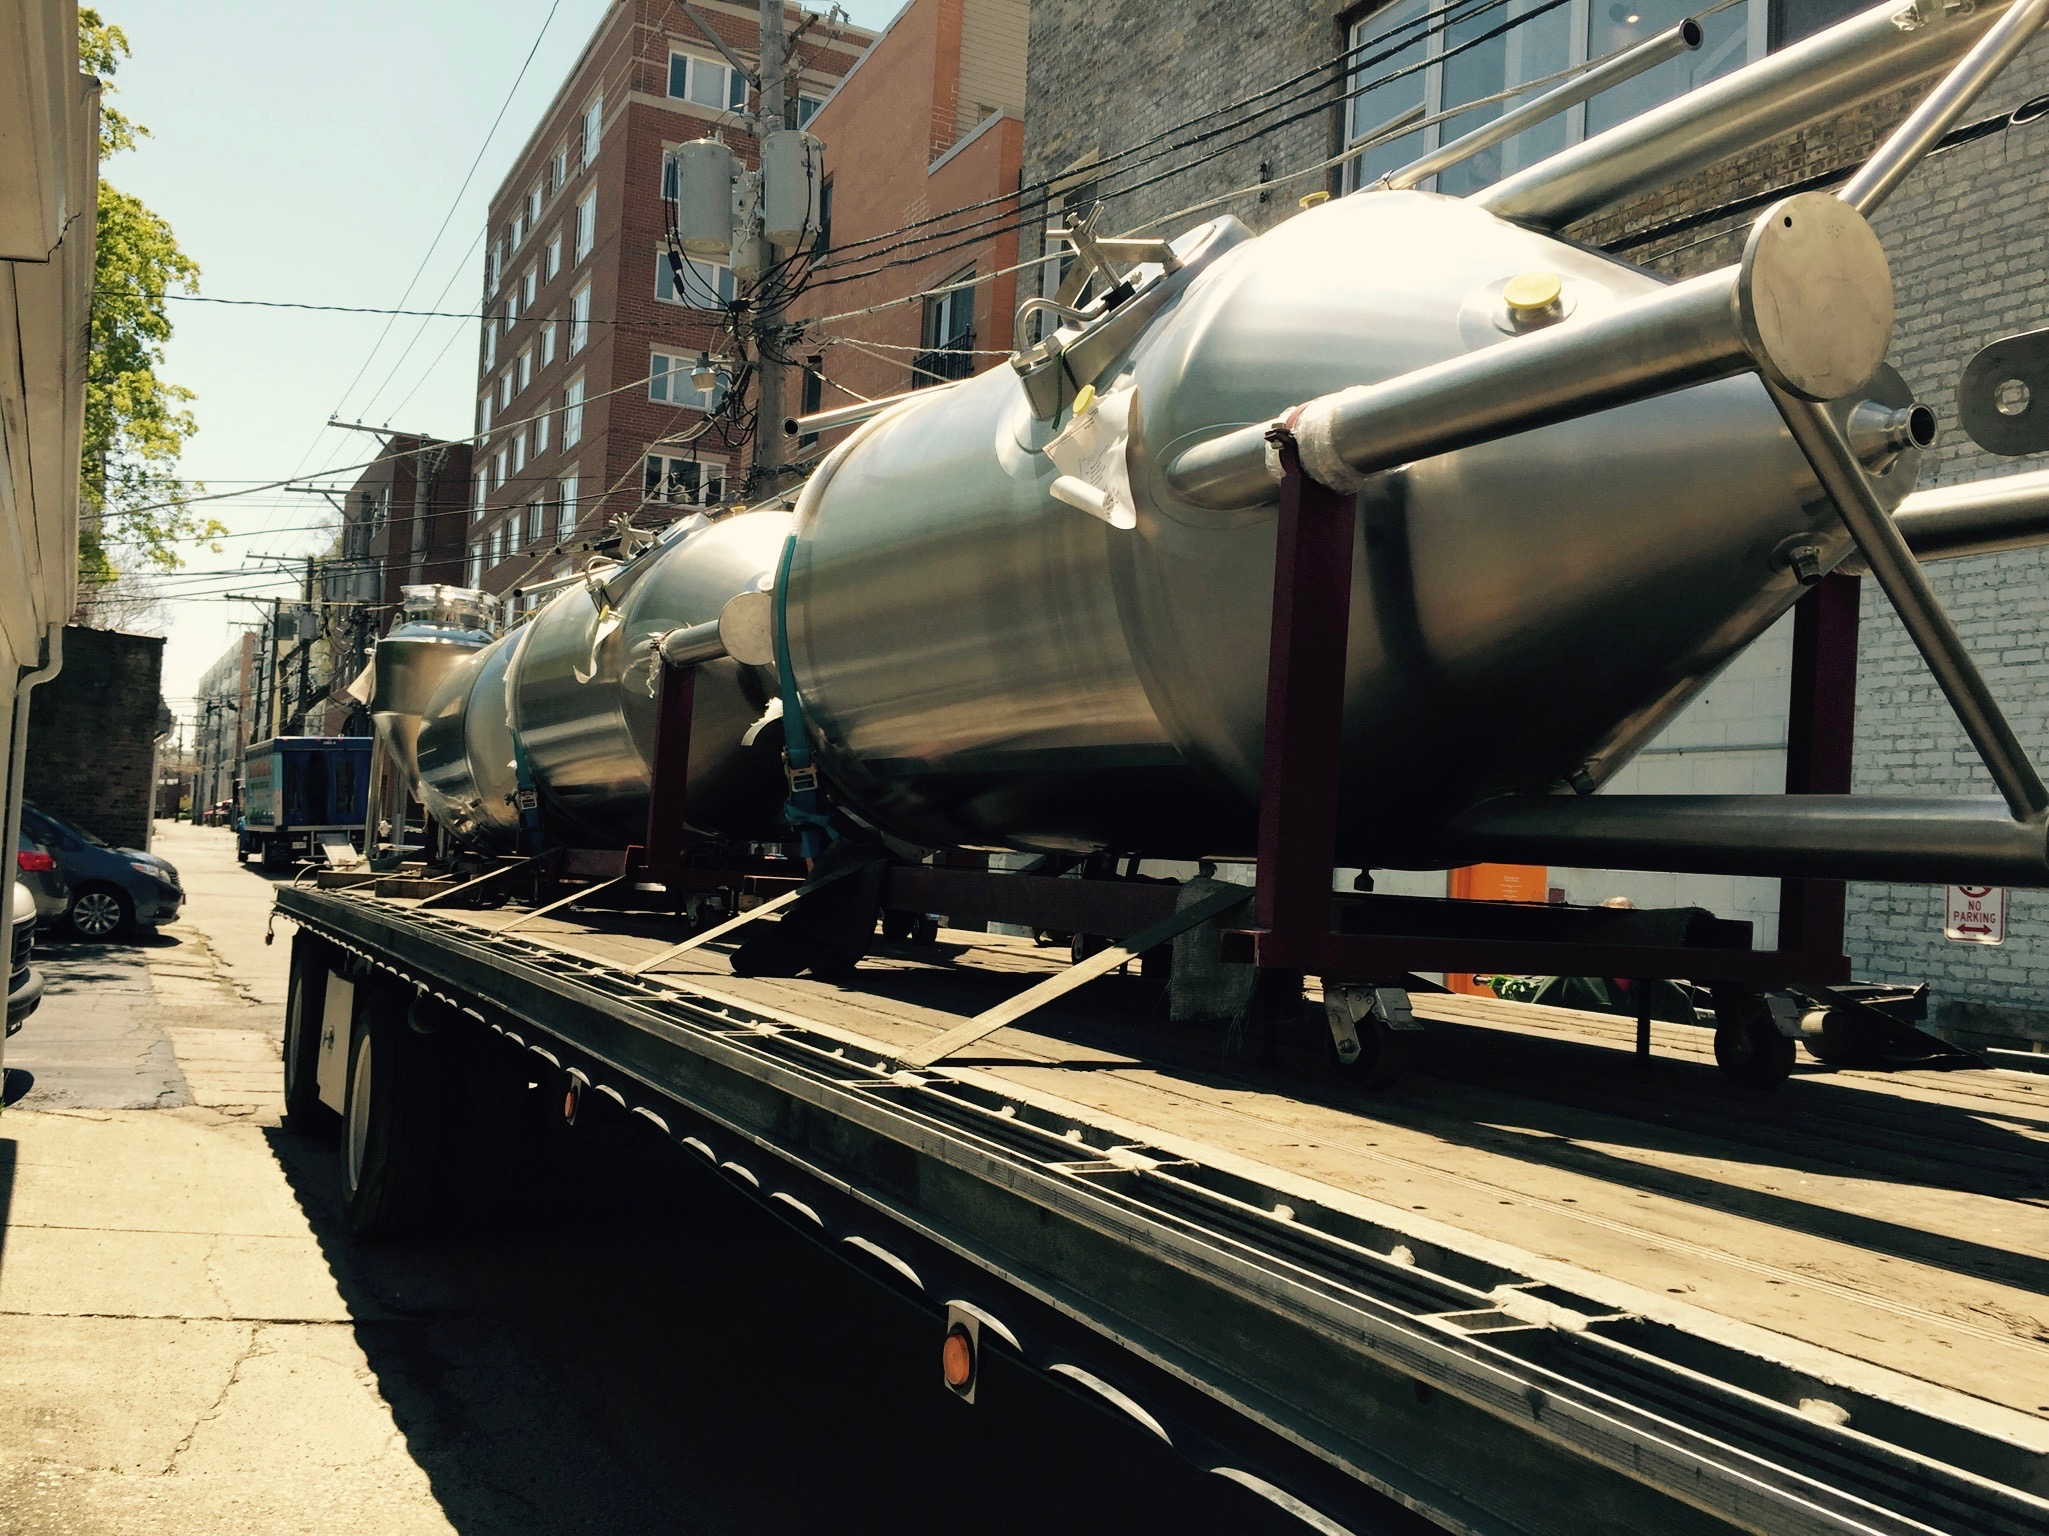 This is the third time we've had fermentors delivered to our alley--but it never gets old!